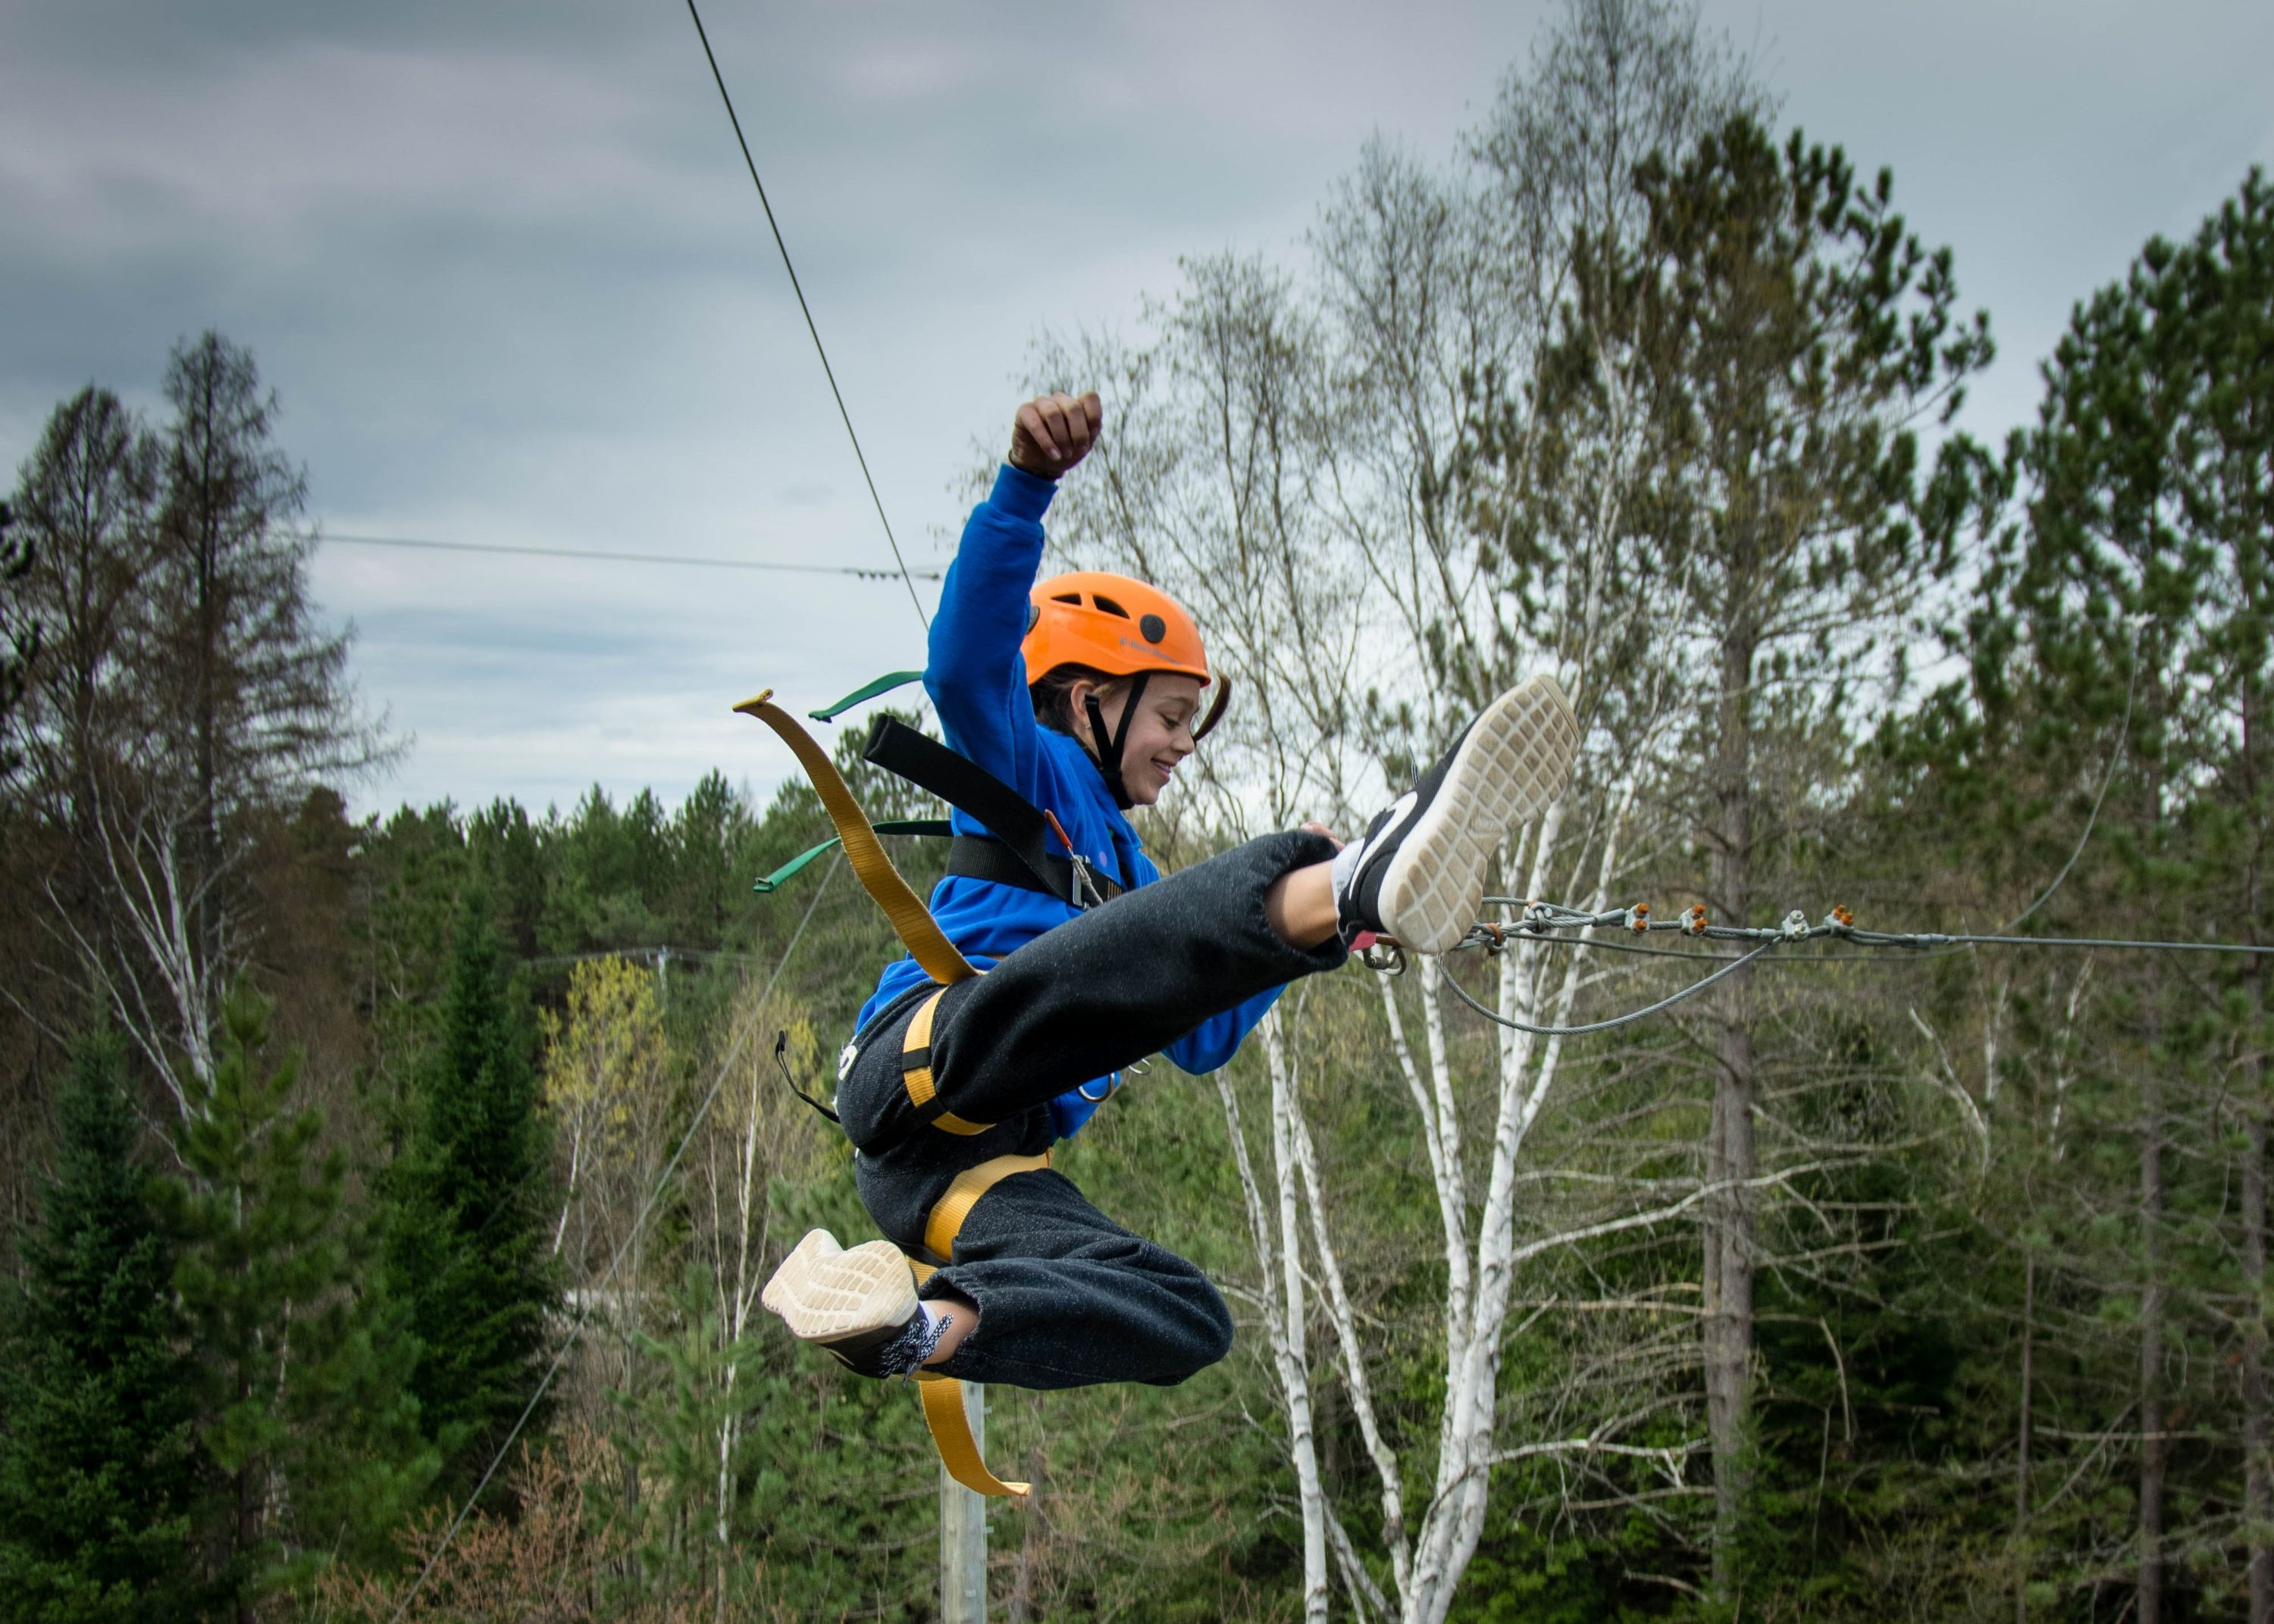 Camper on Giant swing at christian adventure summer camp in northern ontario